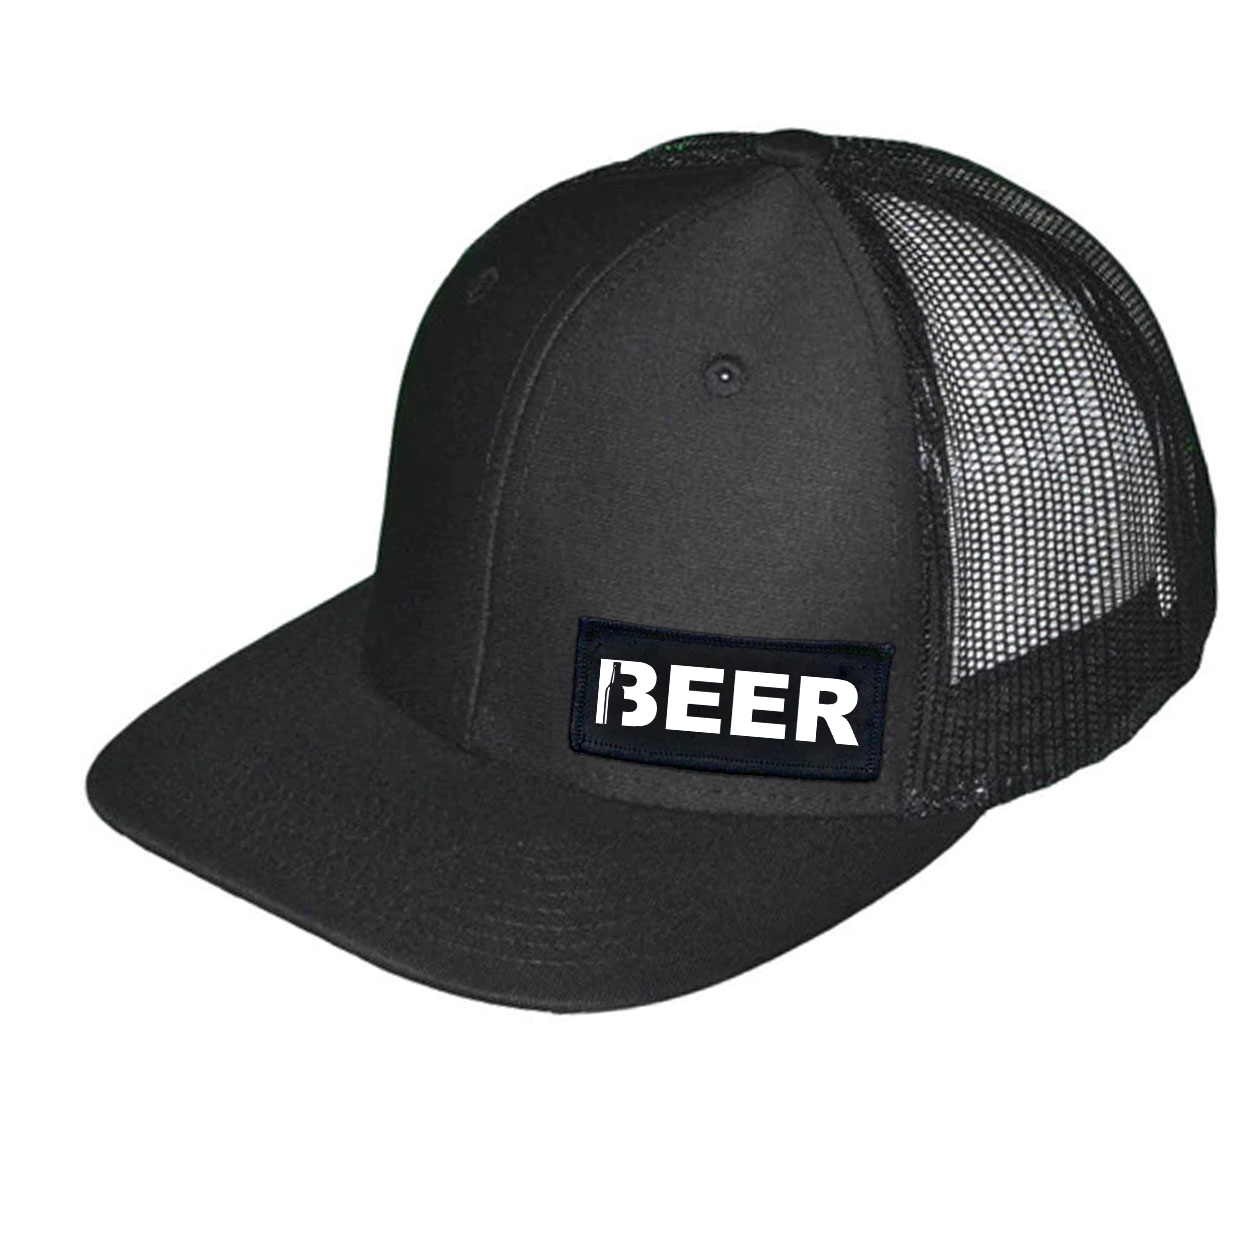 Beer Bottle Logo Night Out Woven Patch Snapback Trucker Hat Black (White Logo)